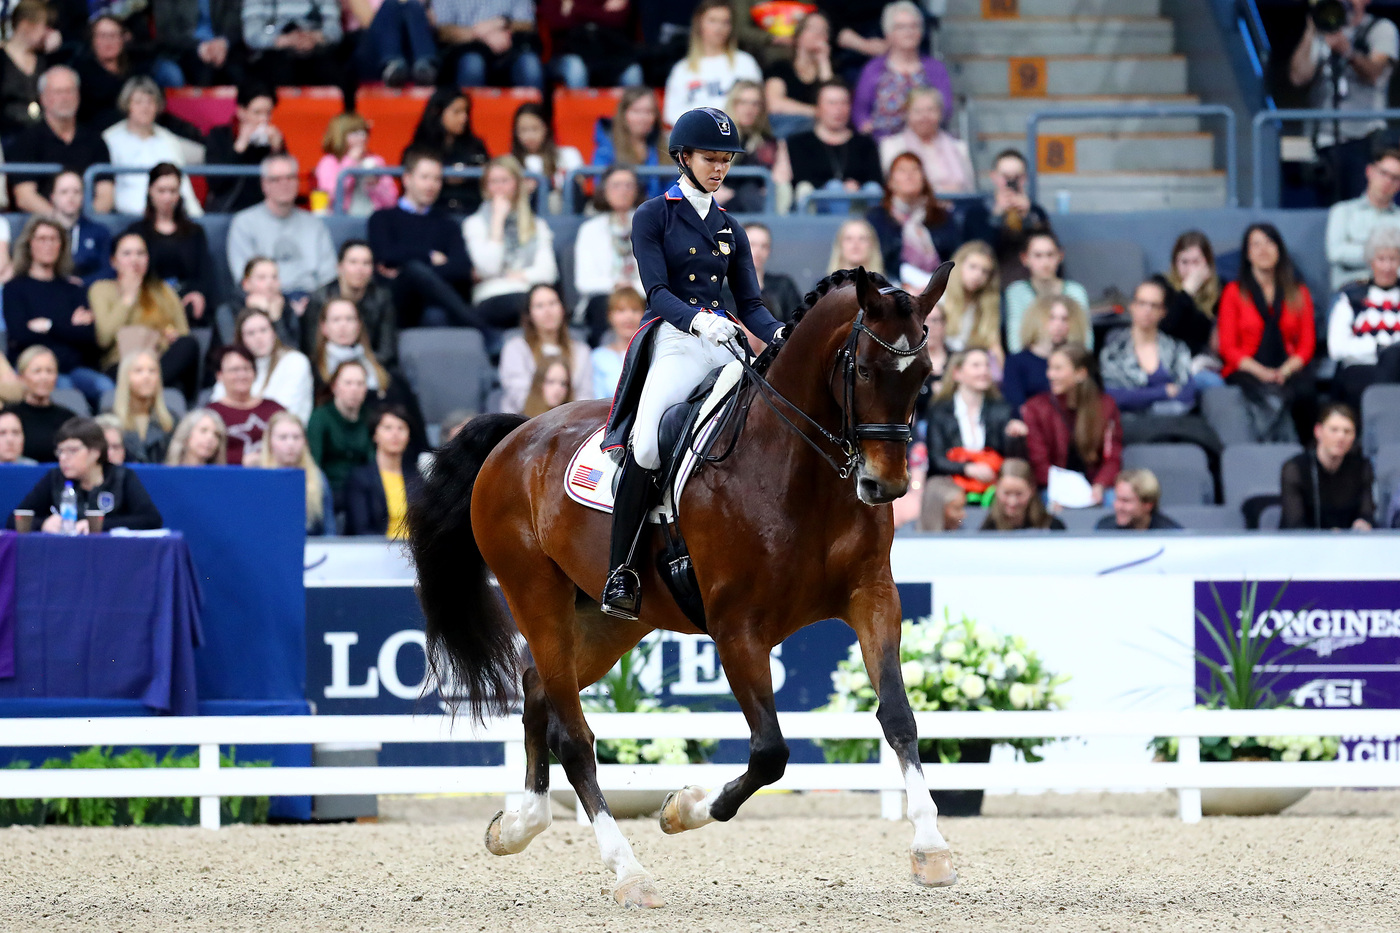 Longines Show Jumping Event: Steve Guerdat and Alamo took brilliant victory at the 2019 Longines FEI Jumping World CupTM Final 2